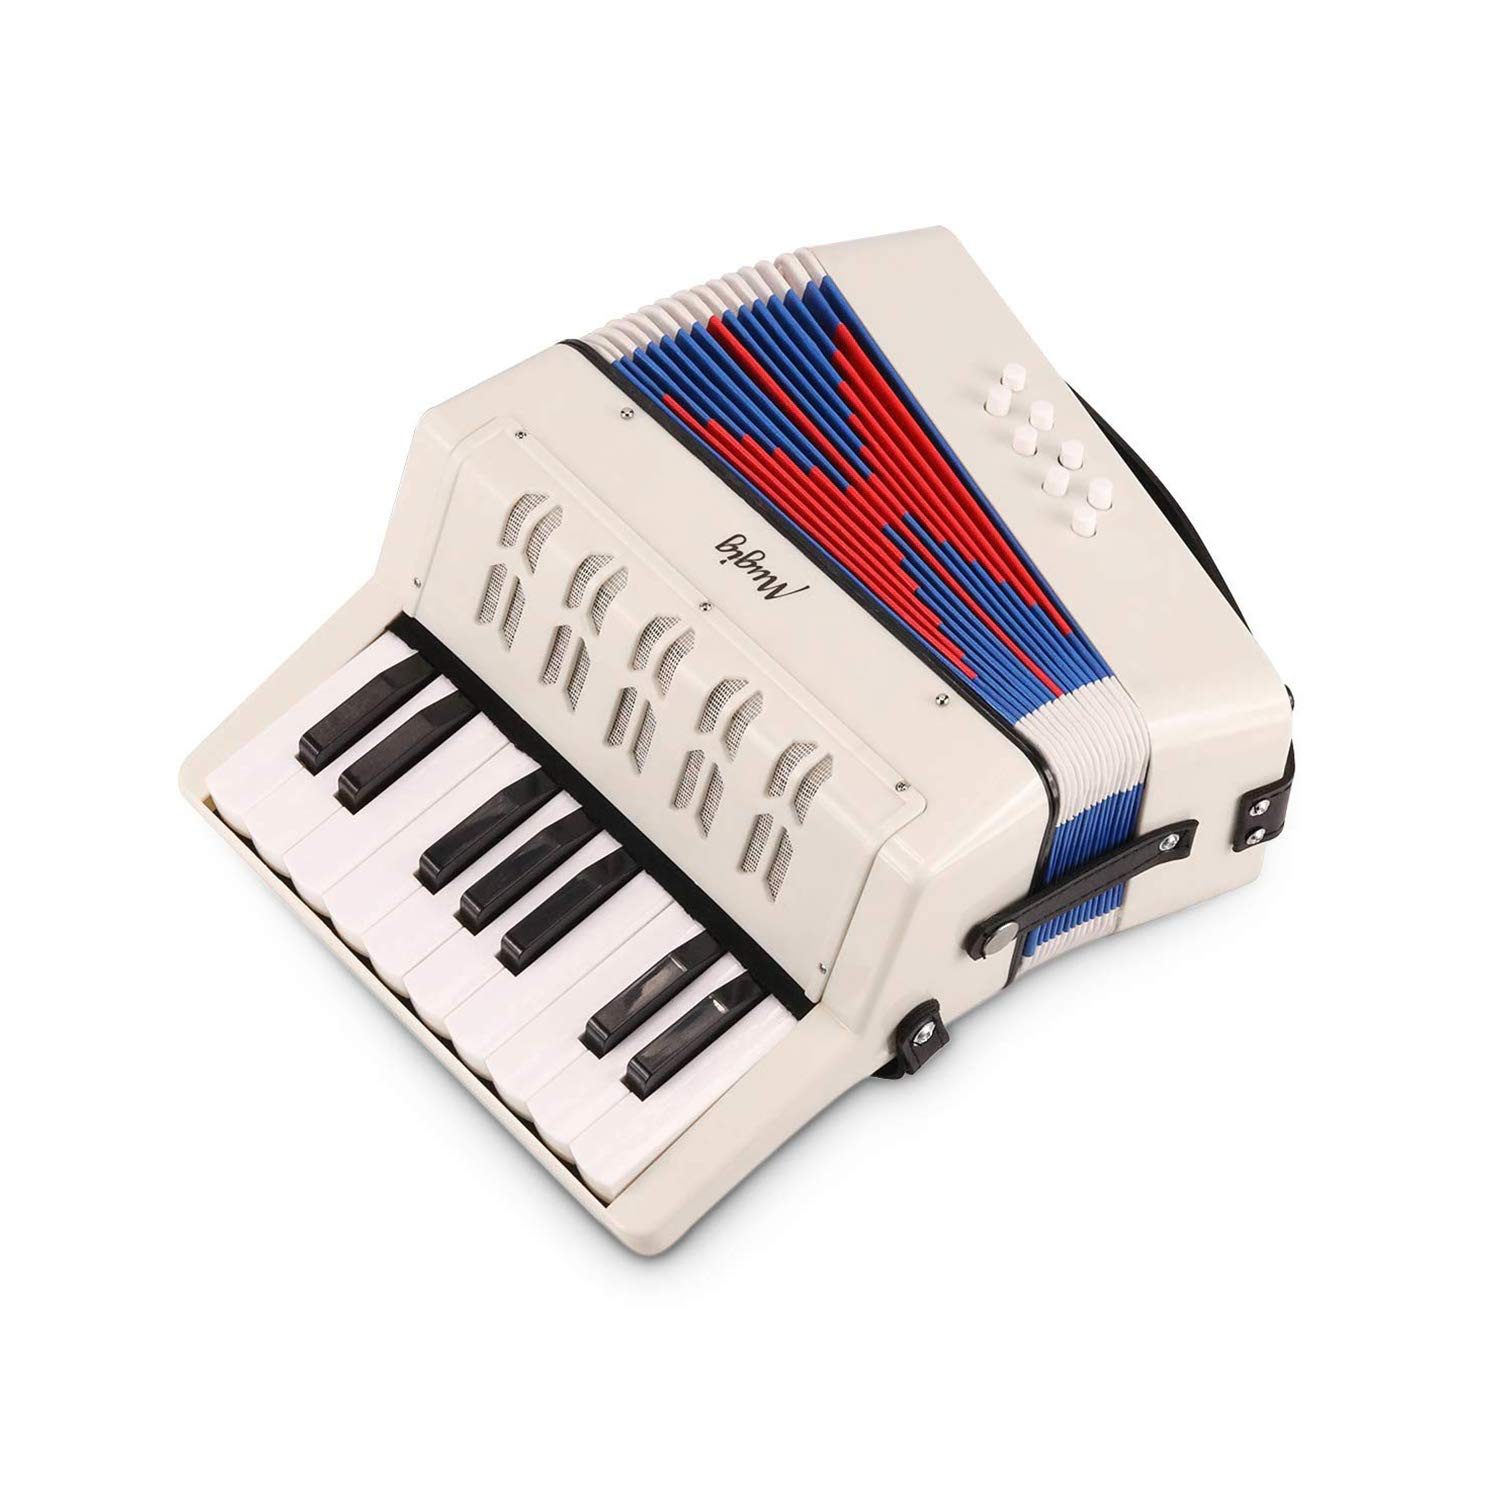 Mugig Piano Accordion, 17 Key Keyboard Piano with 8 Bass Button, include Air Valve, Adjustable Shoulder Strap, Kid Instrument for Early Childhood Development (White) by Mugig